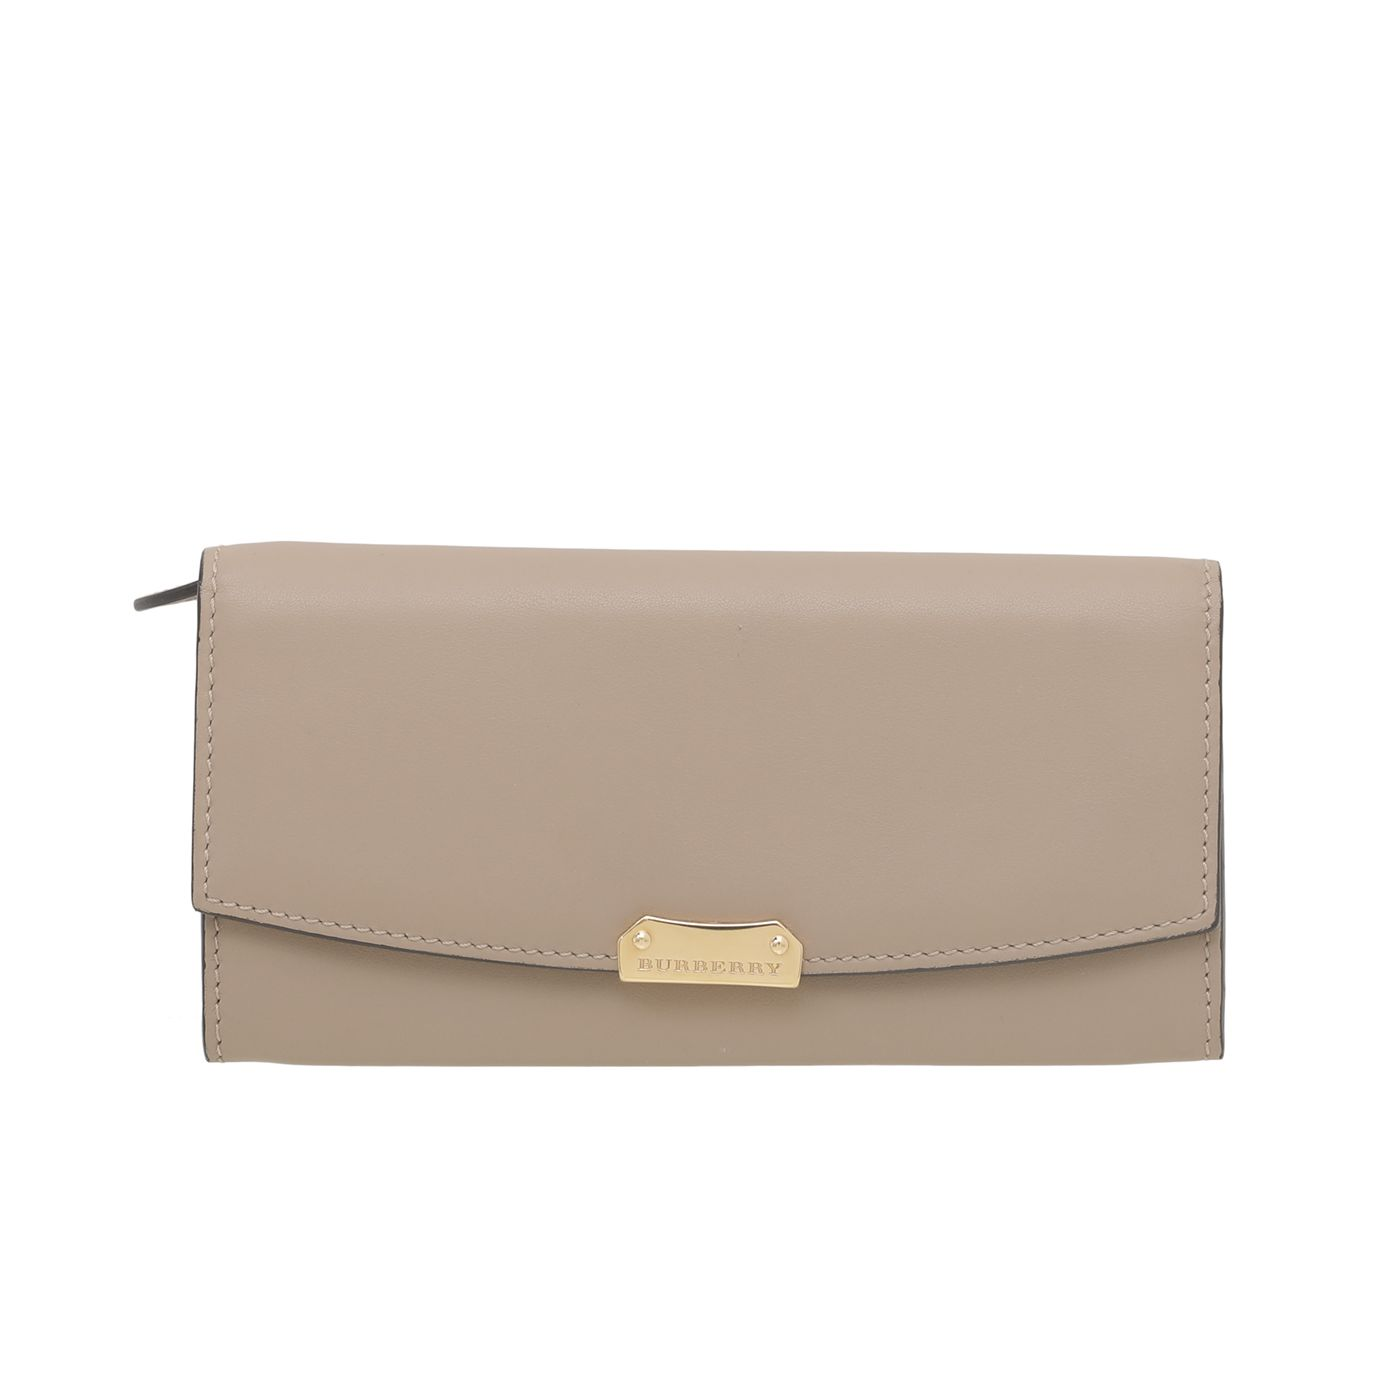 Burberry Camel Continental Wallet